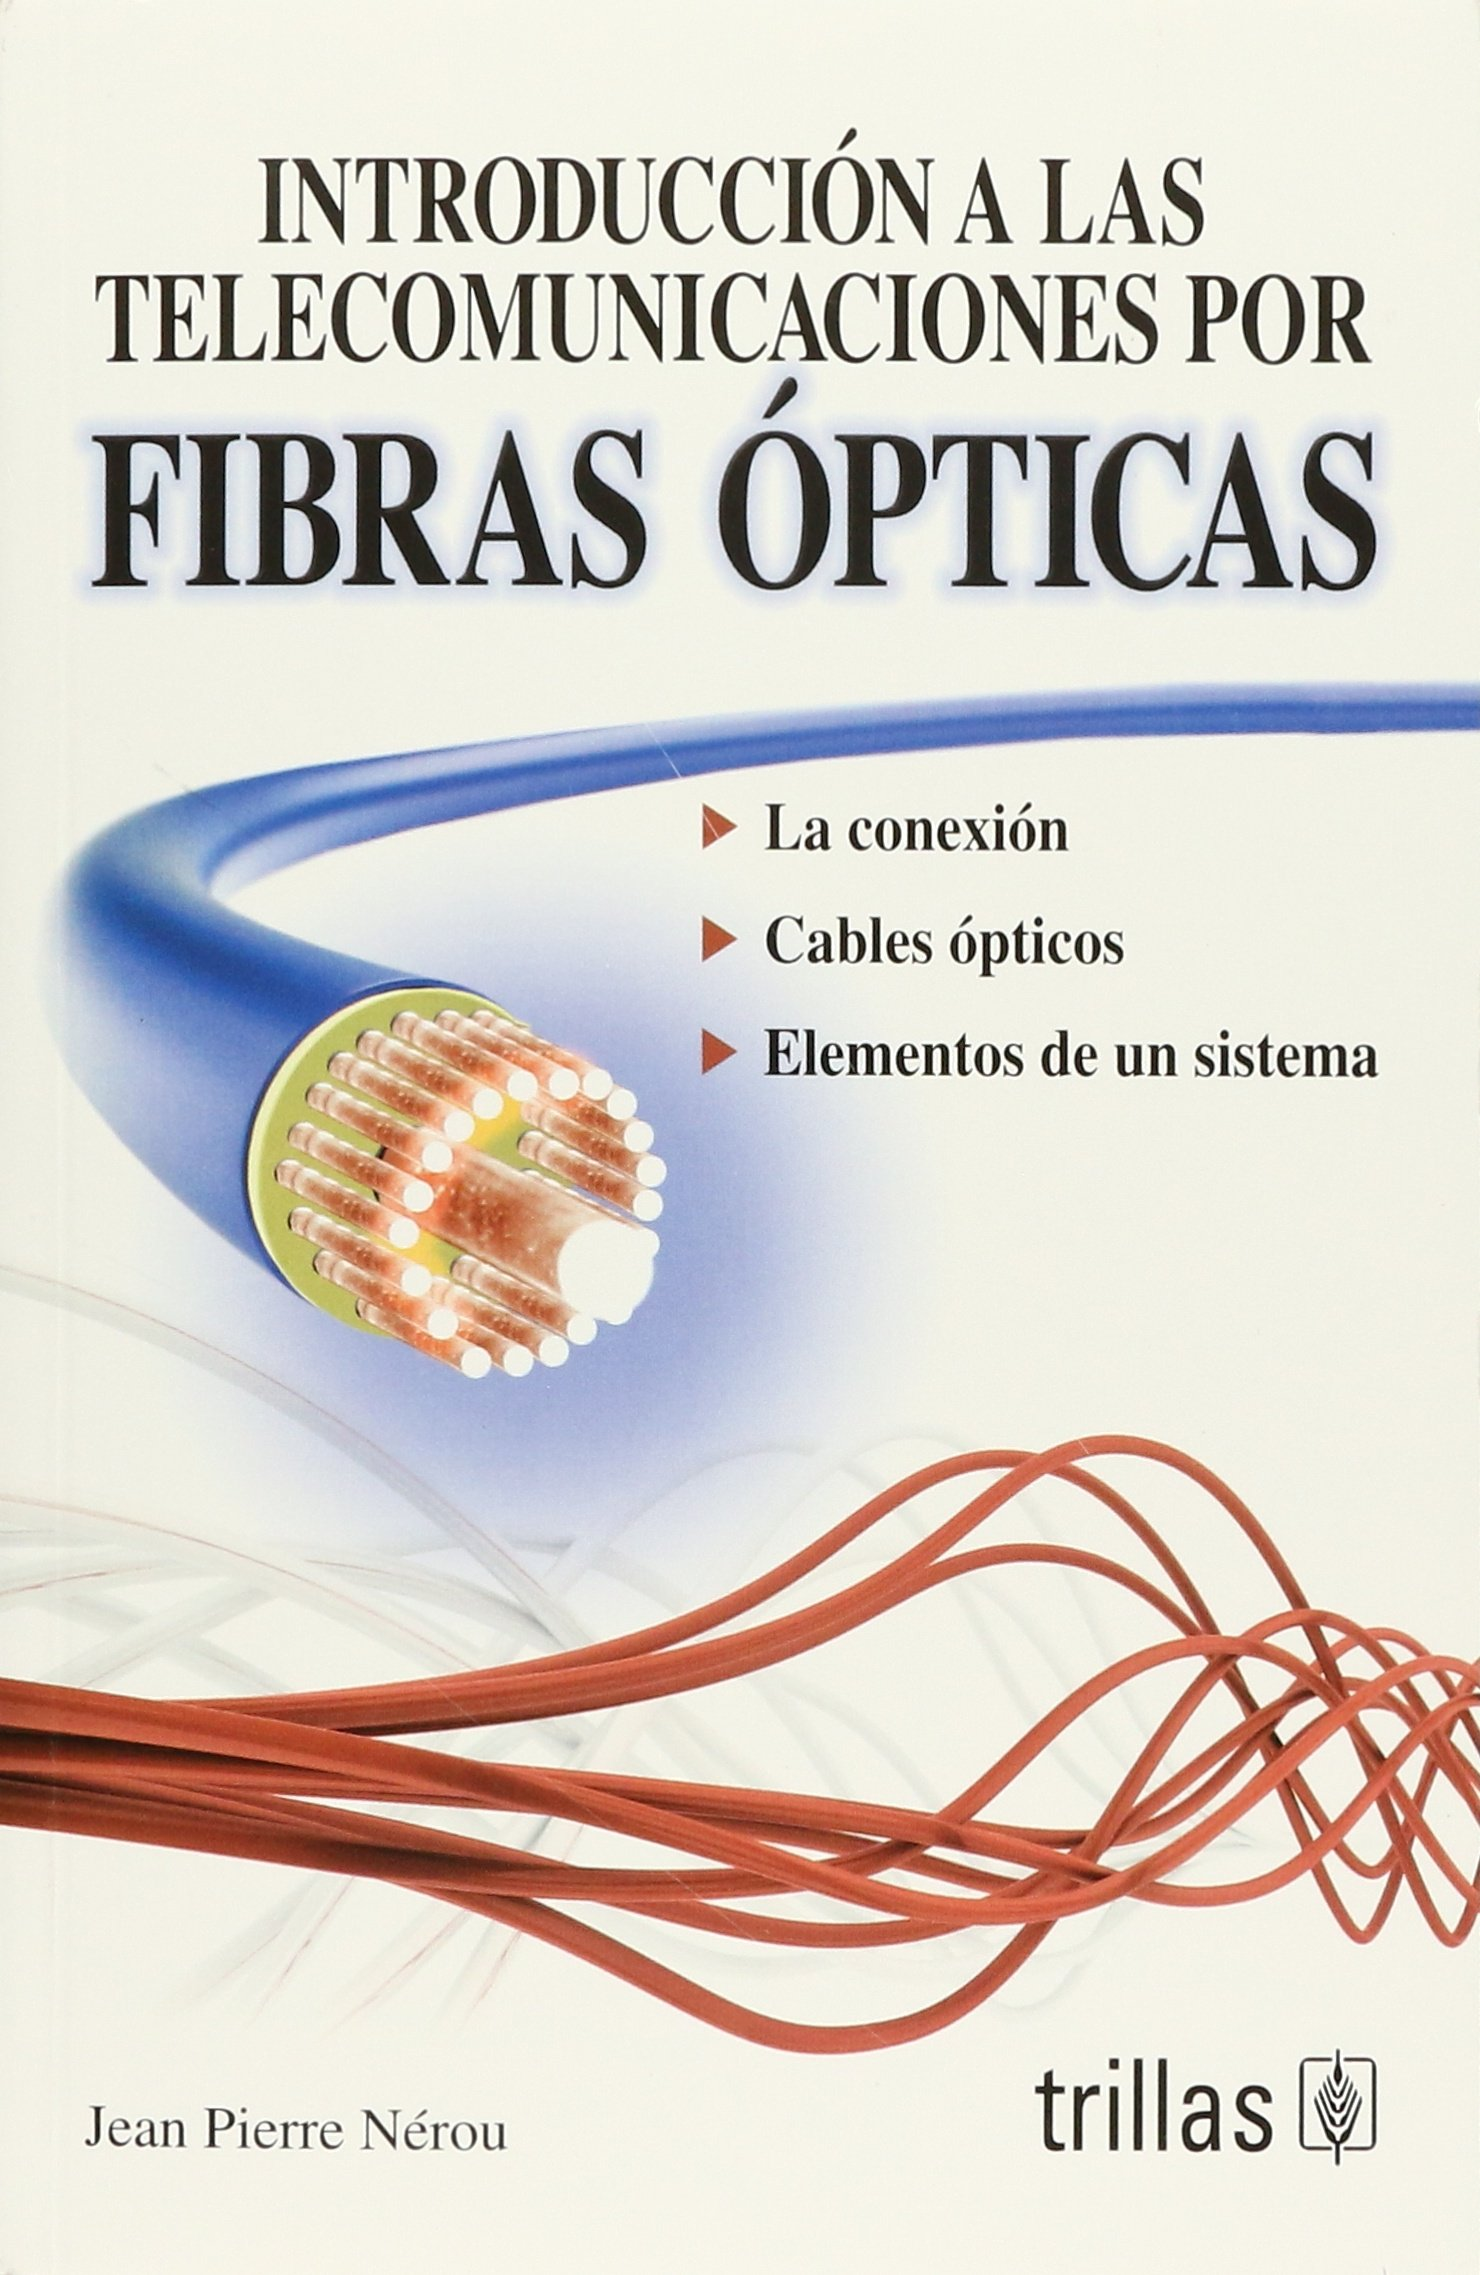 INTRODUCCION A LAS TELECOMUNICACIONES POR FIBRAS OPTICAS: JEAN PIERRE NEROU: 9789682438516: Amazon.com: Books